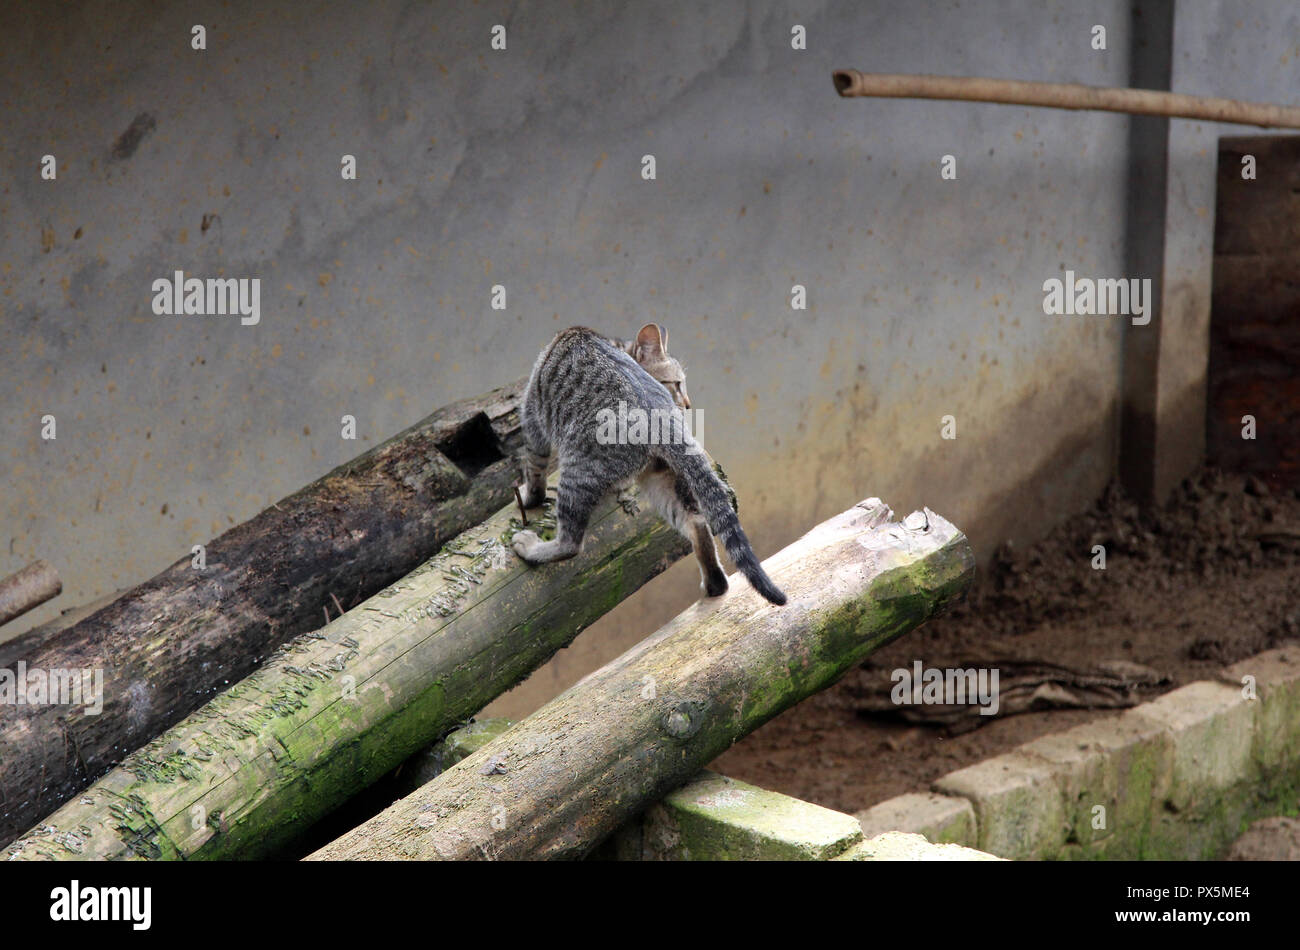 Intrepid cat scales shed roof in a village in Vietnam - Stock Image